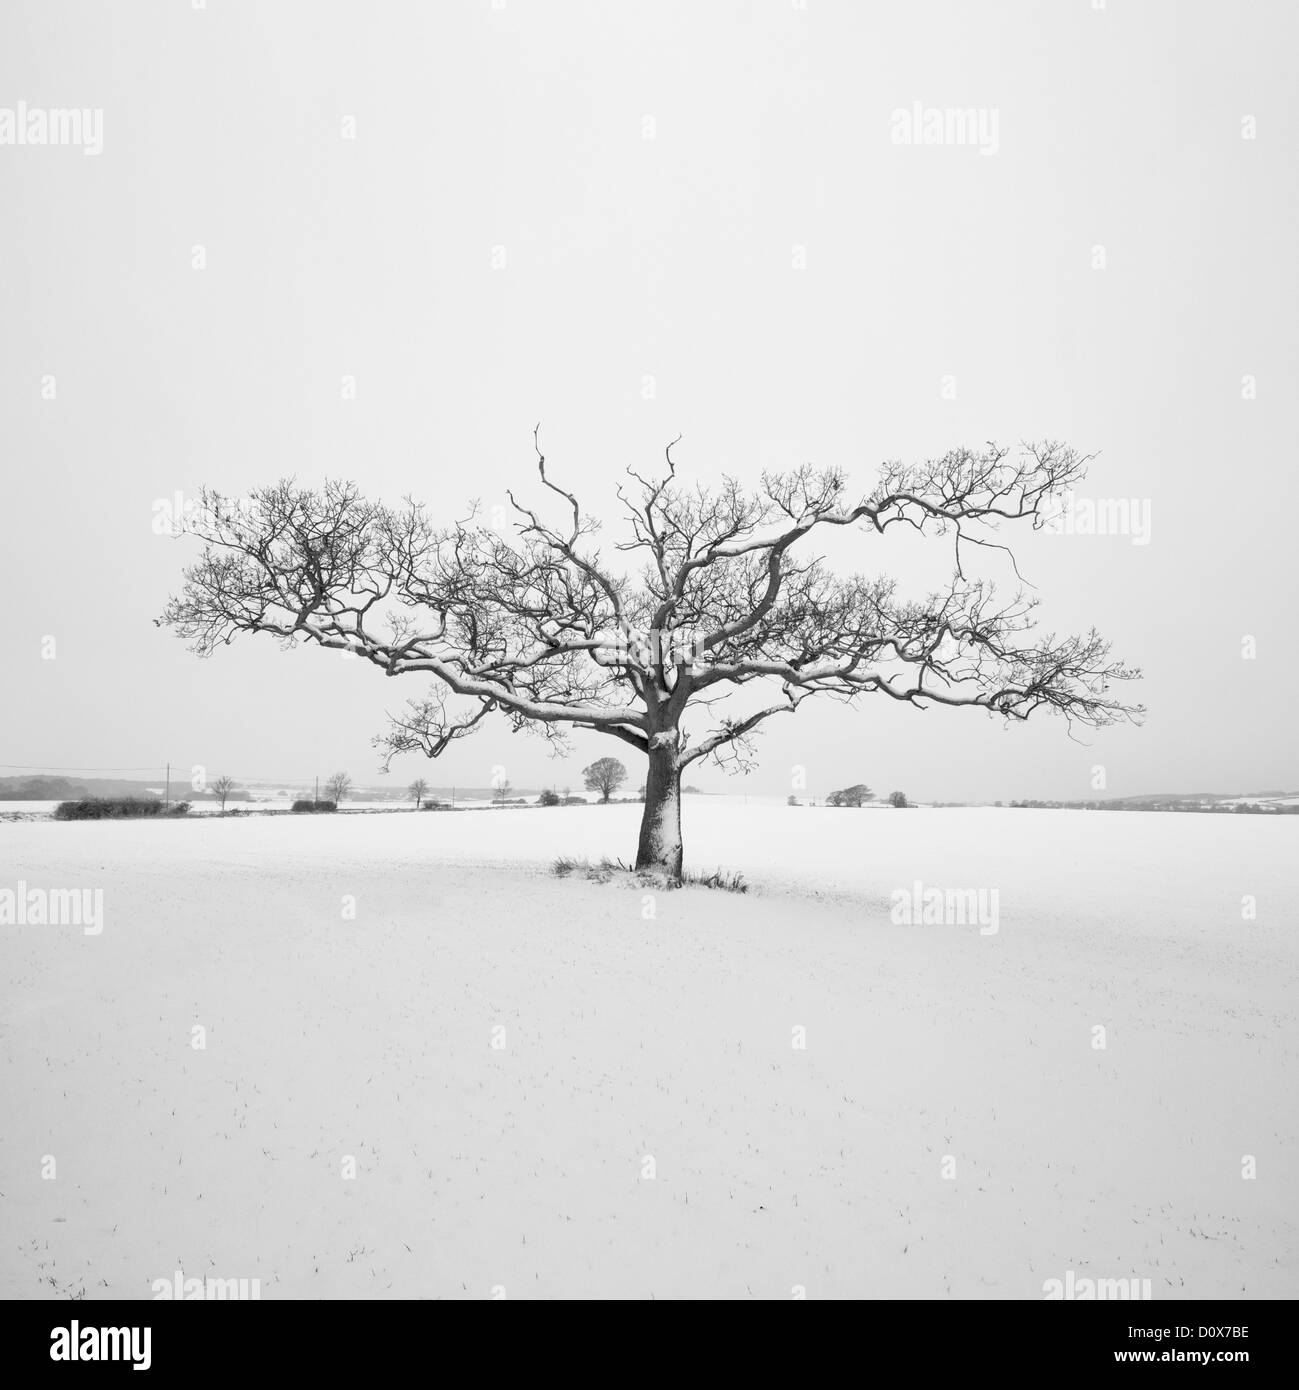 An old Oak tree in the winter snow. Appledore, Kent - Stock Image